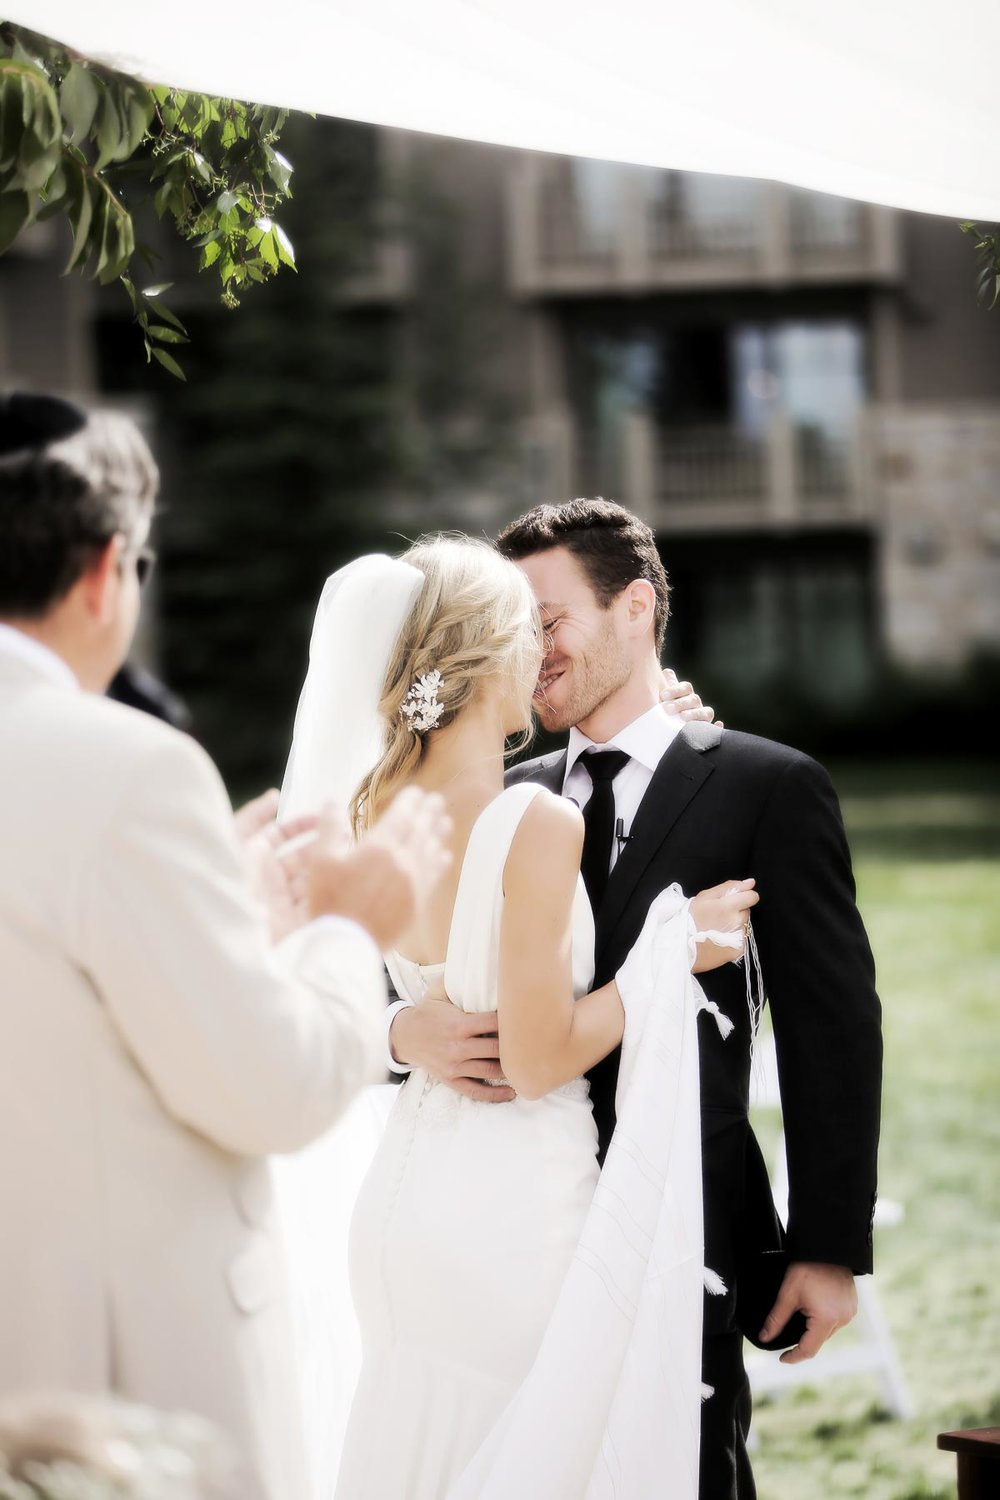 bride-and-groom-kiss-deer-valley-weddings-pepper-nix-photogrpahy.jpg